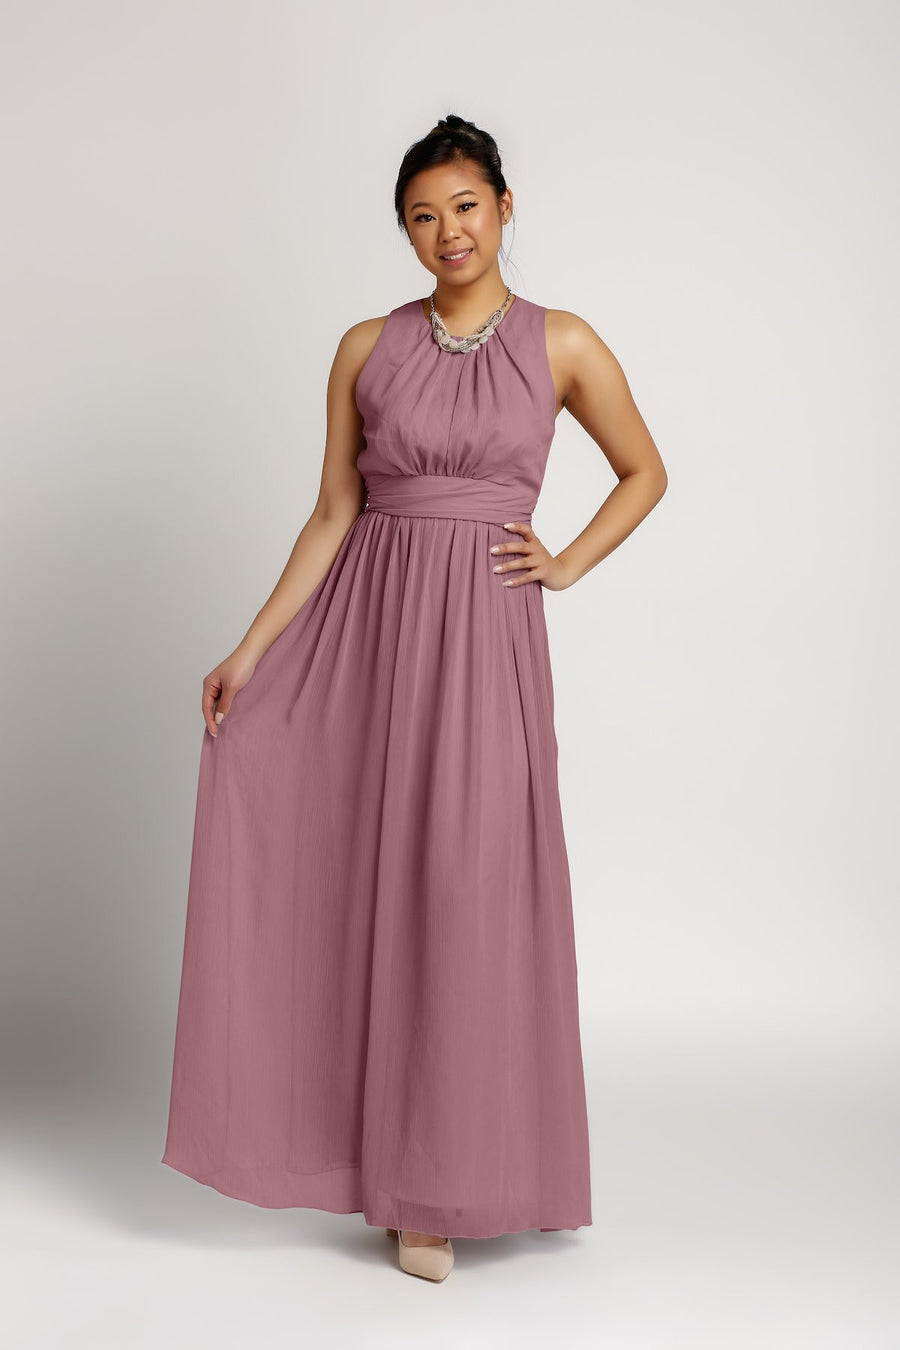 Bridesmaid Dresses - Jewel Floor Length Chiffon Bridesmaid Dress - BridesMade